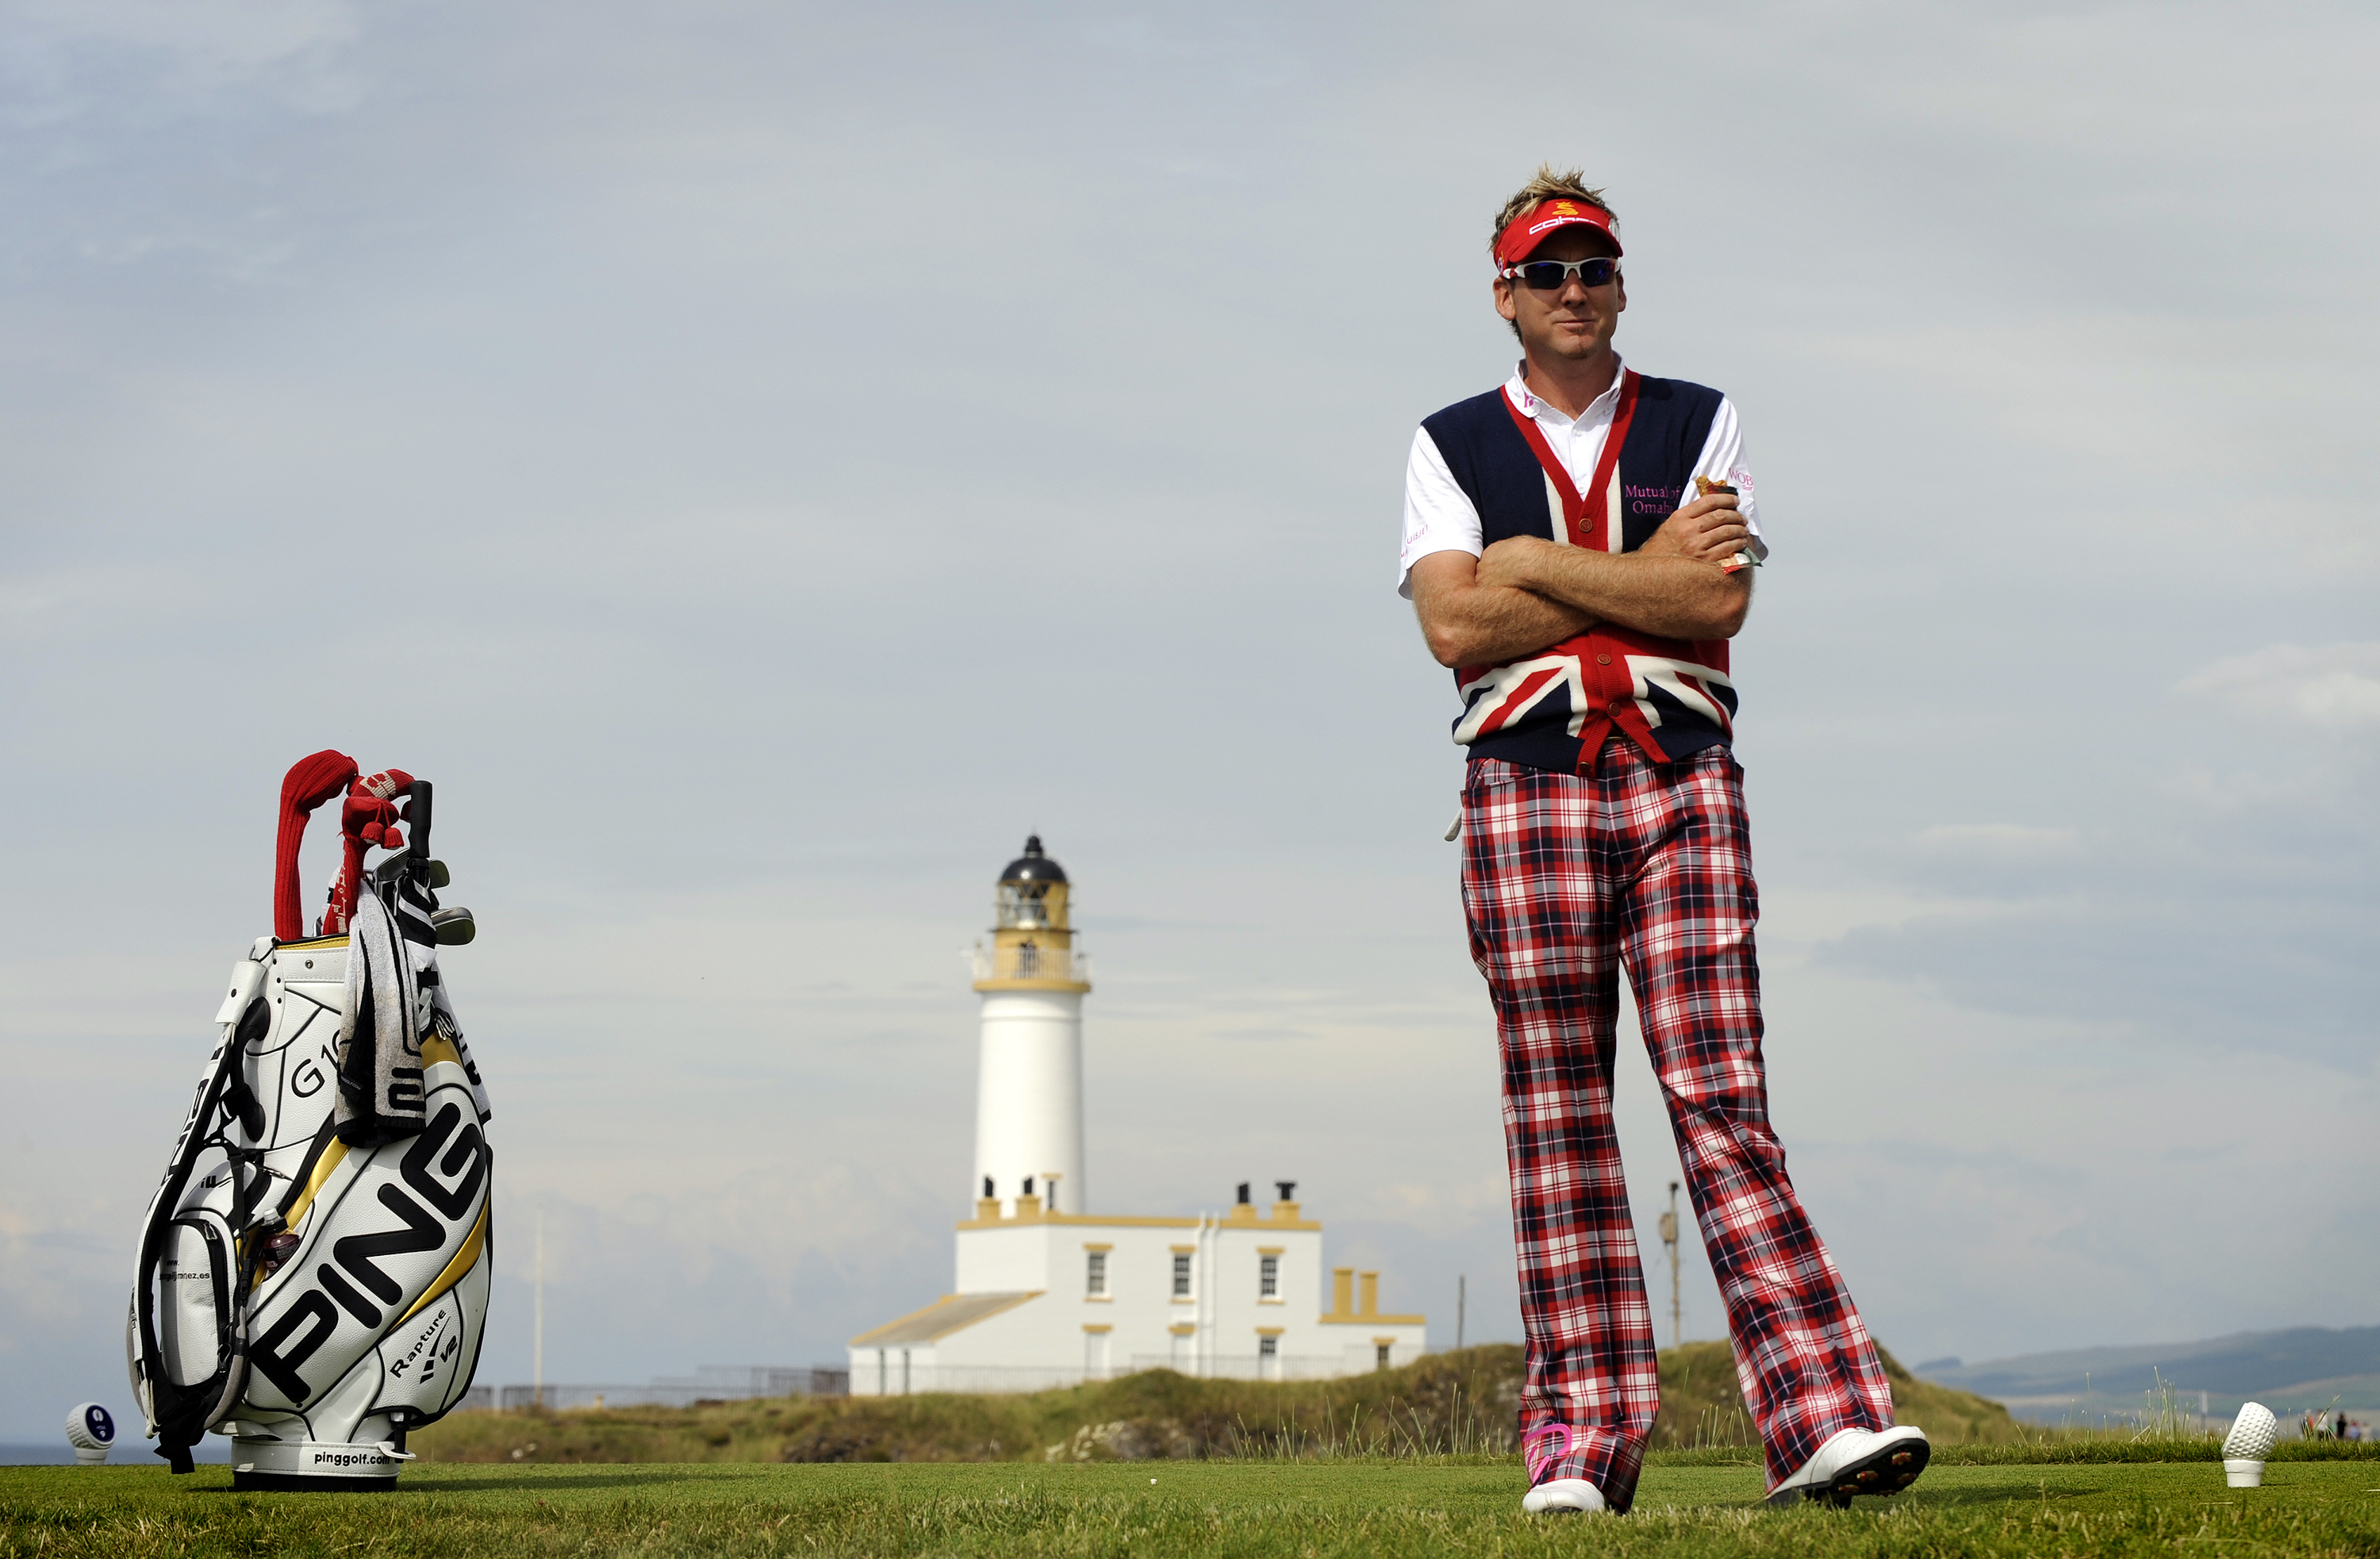 The winner of the Ian Poulter Match-Play Championships gets a pair of snug trousers.